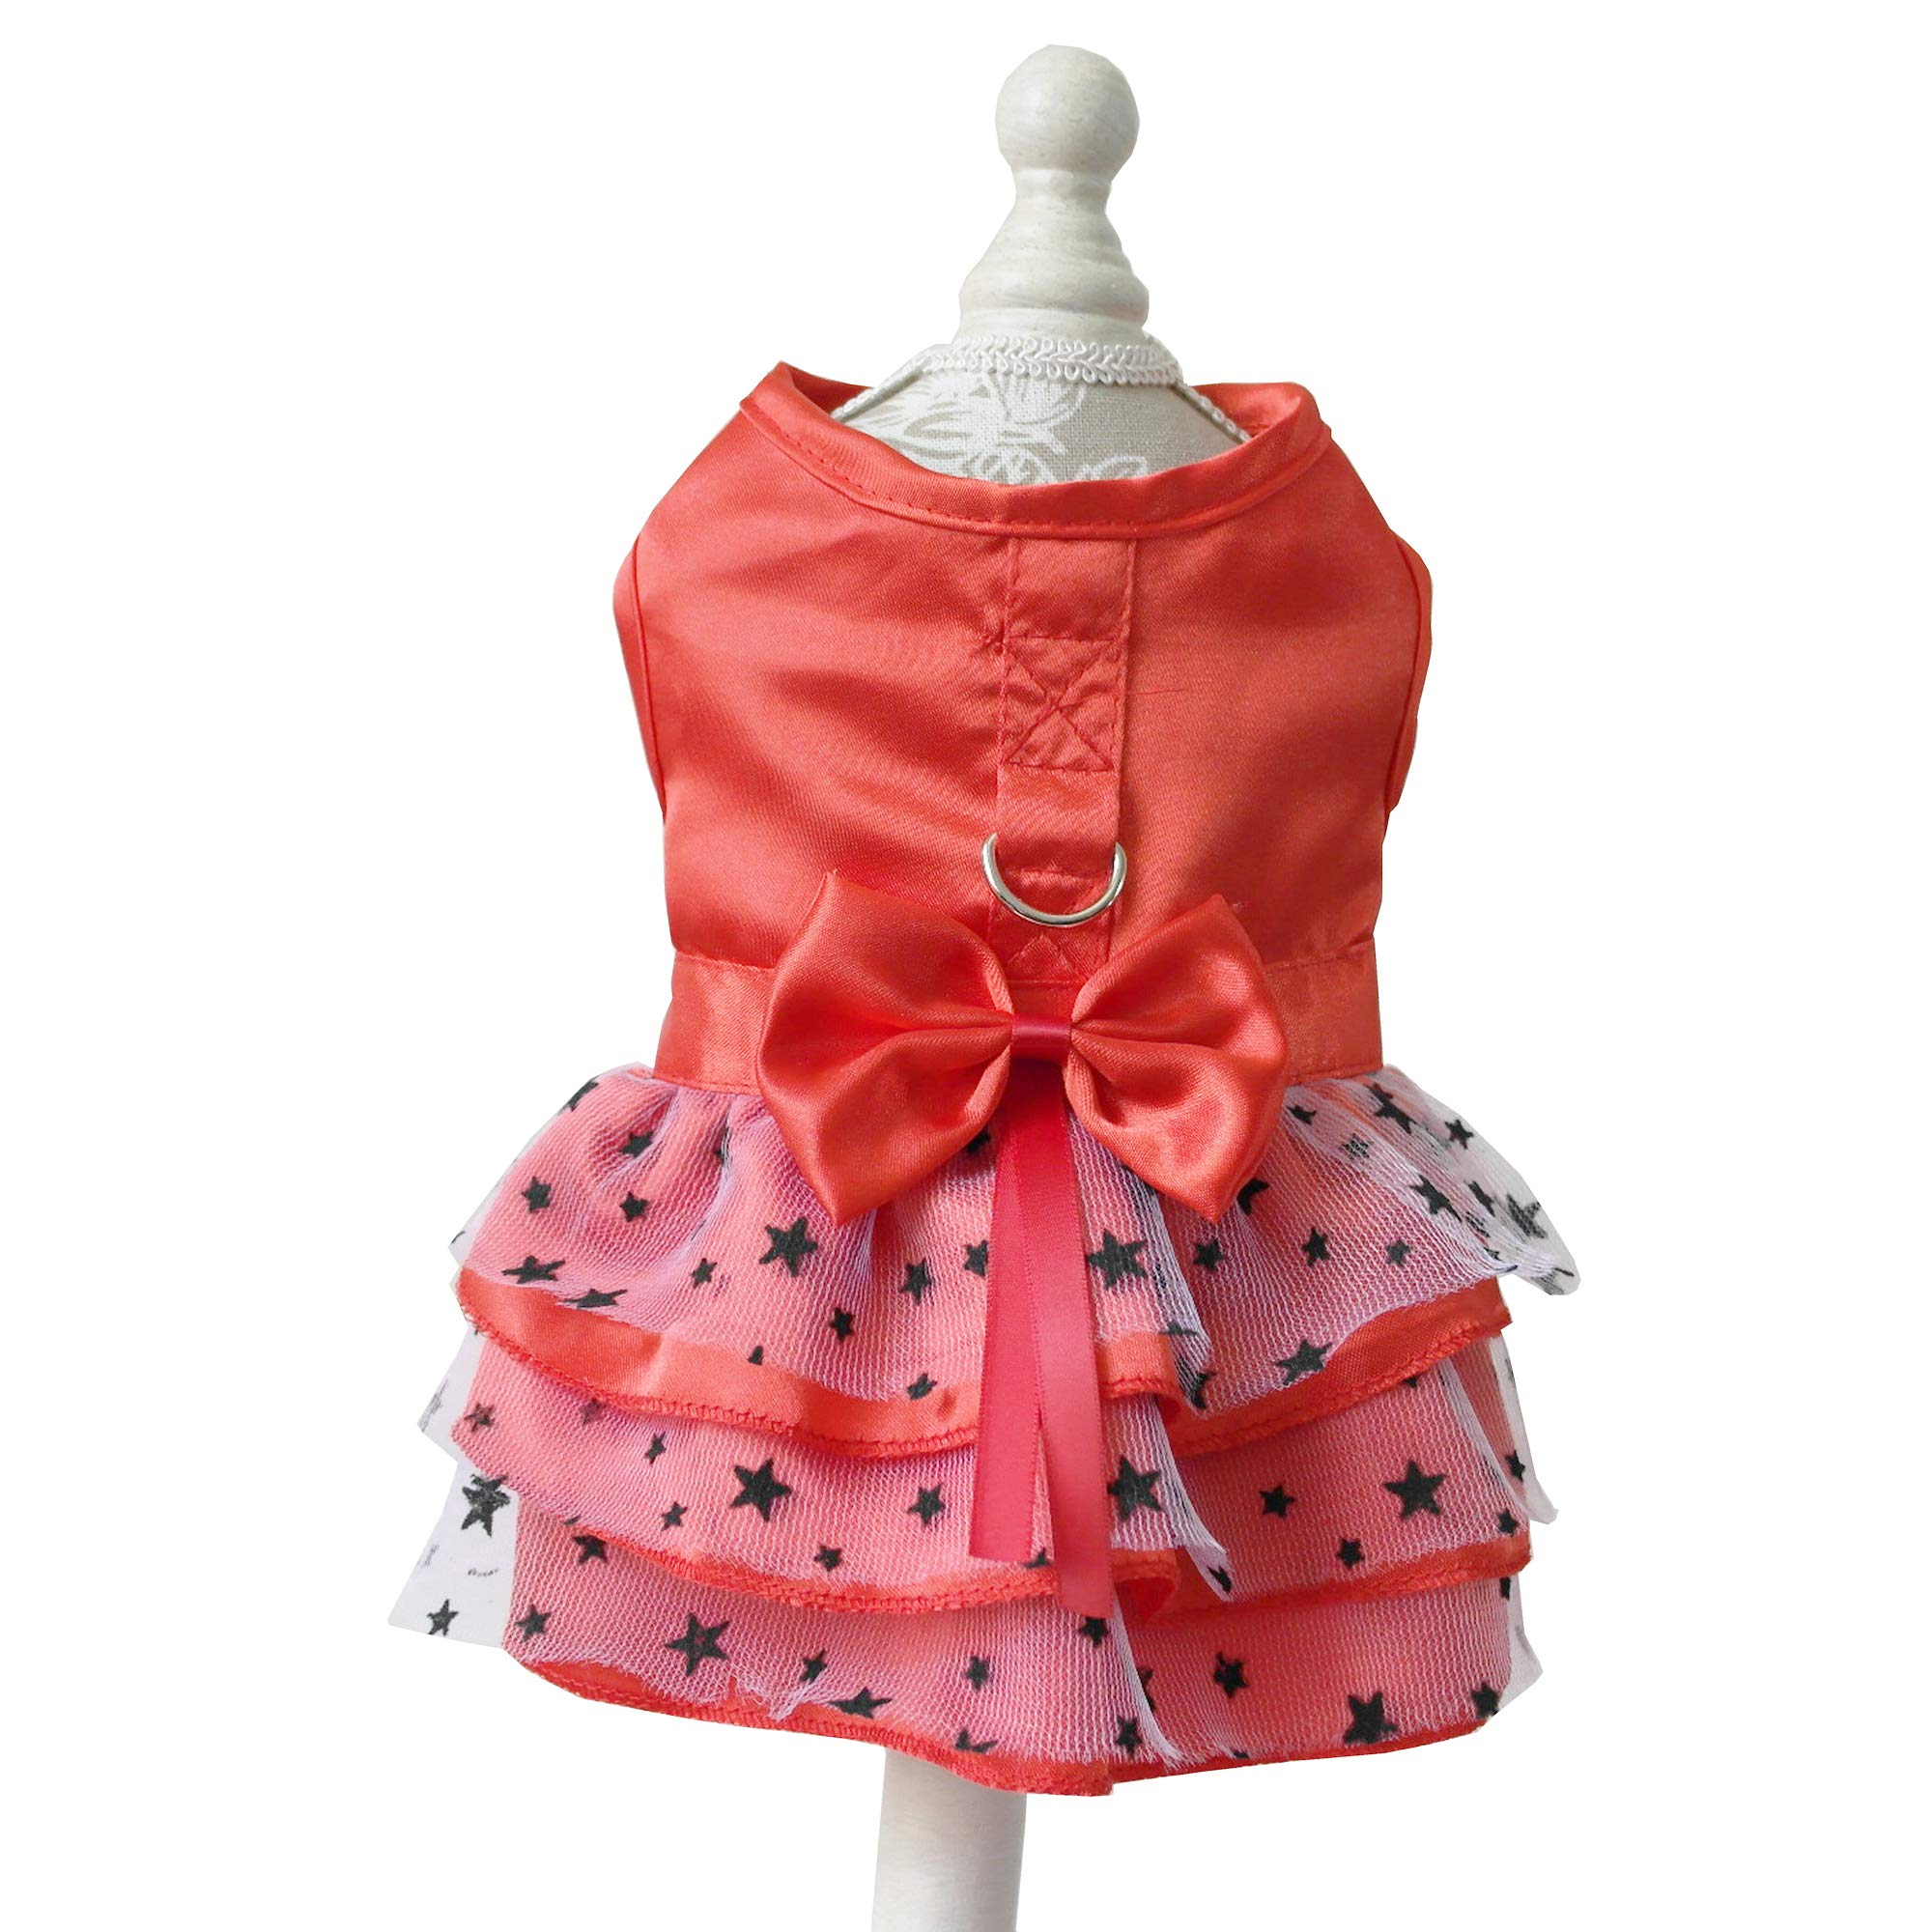 petalk Dog Dresses Harness D-Ring Butterfly Bow Starry Tulle Dog Cat Skirt Princess (M, Red)